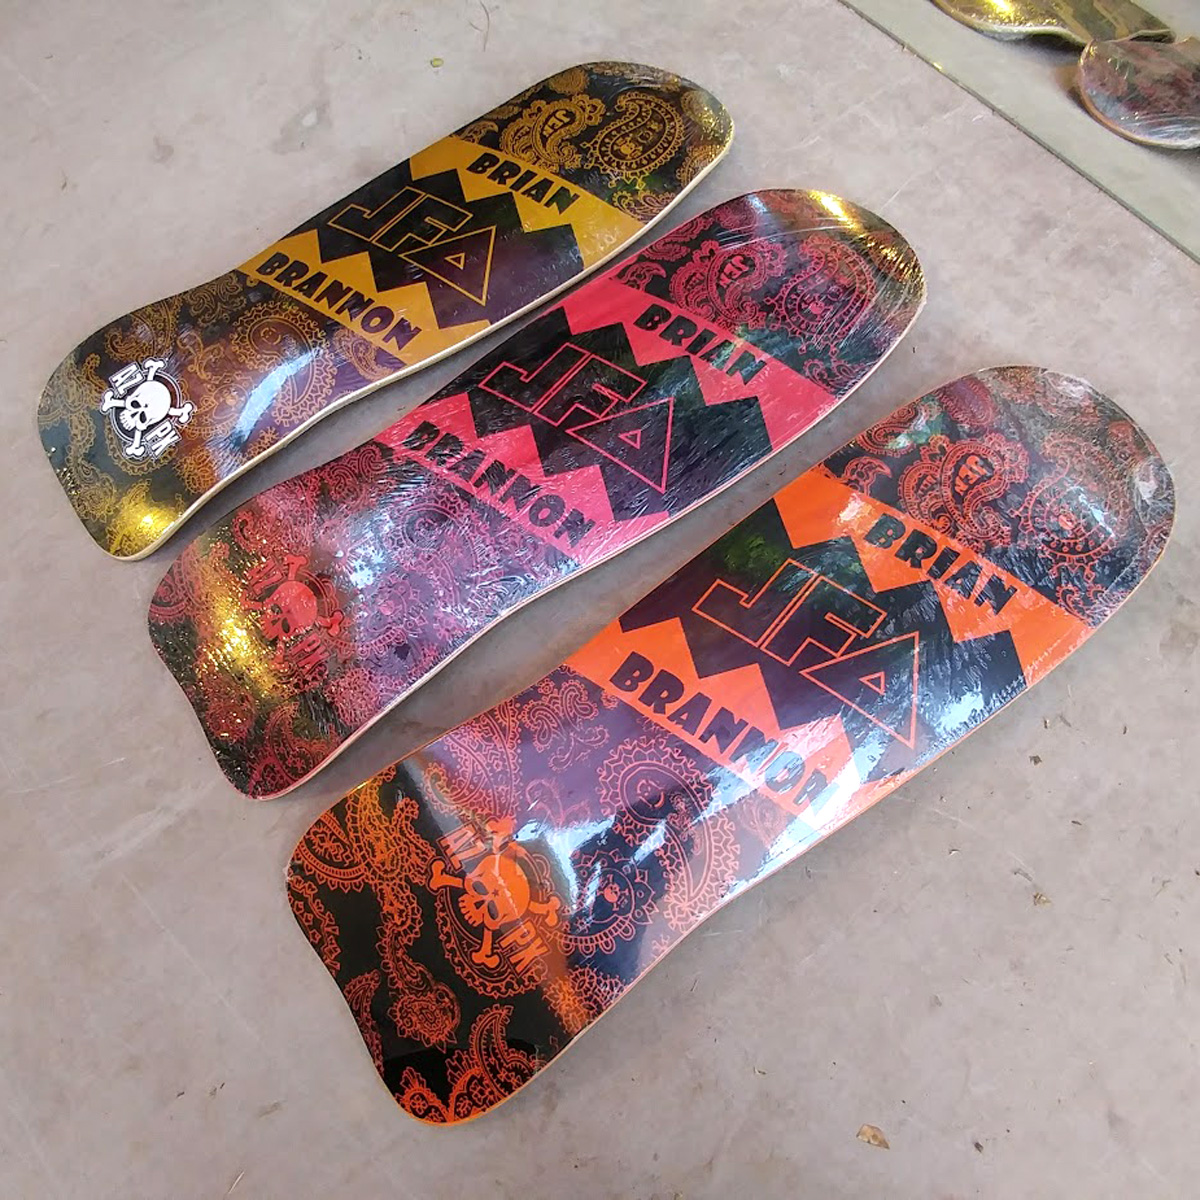 Brian Brannon Signature Model 3 Deck Bundle RARE!